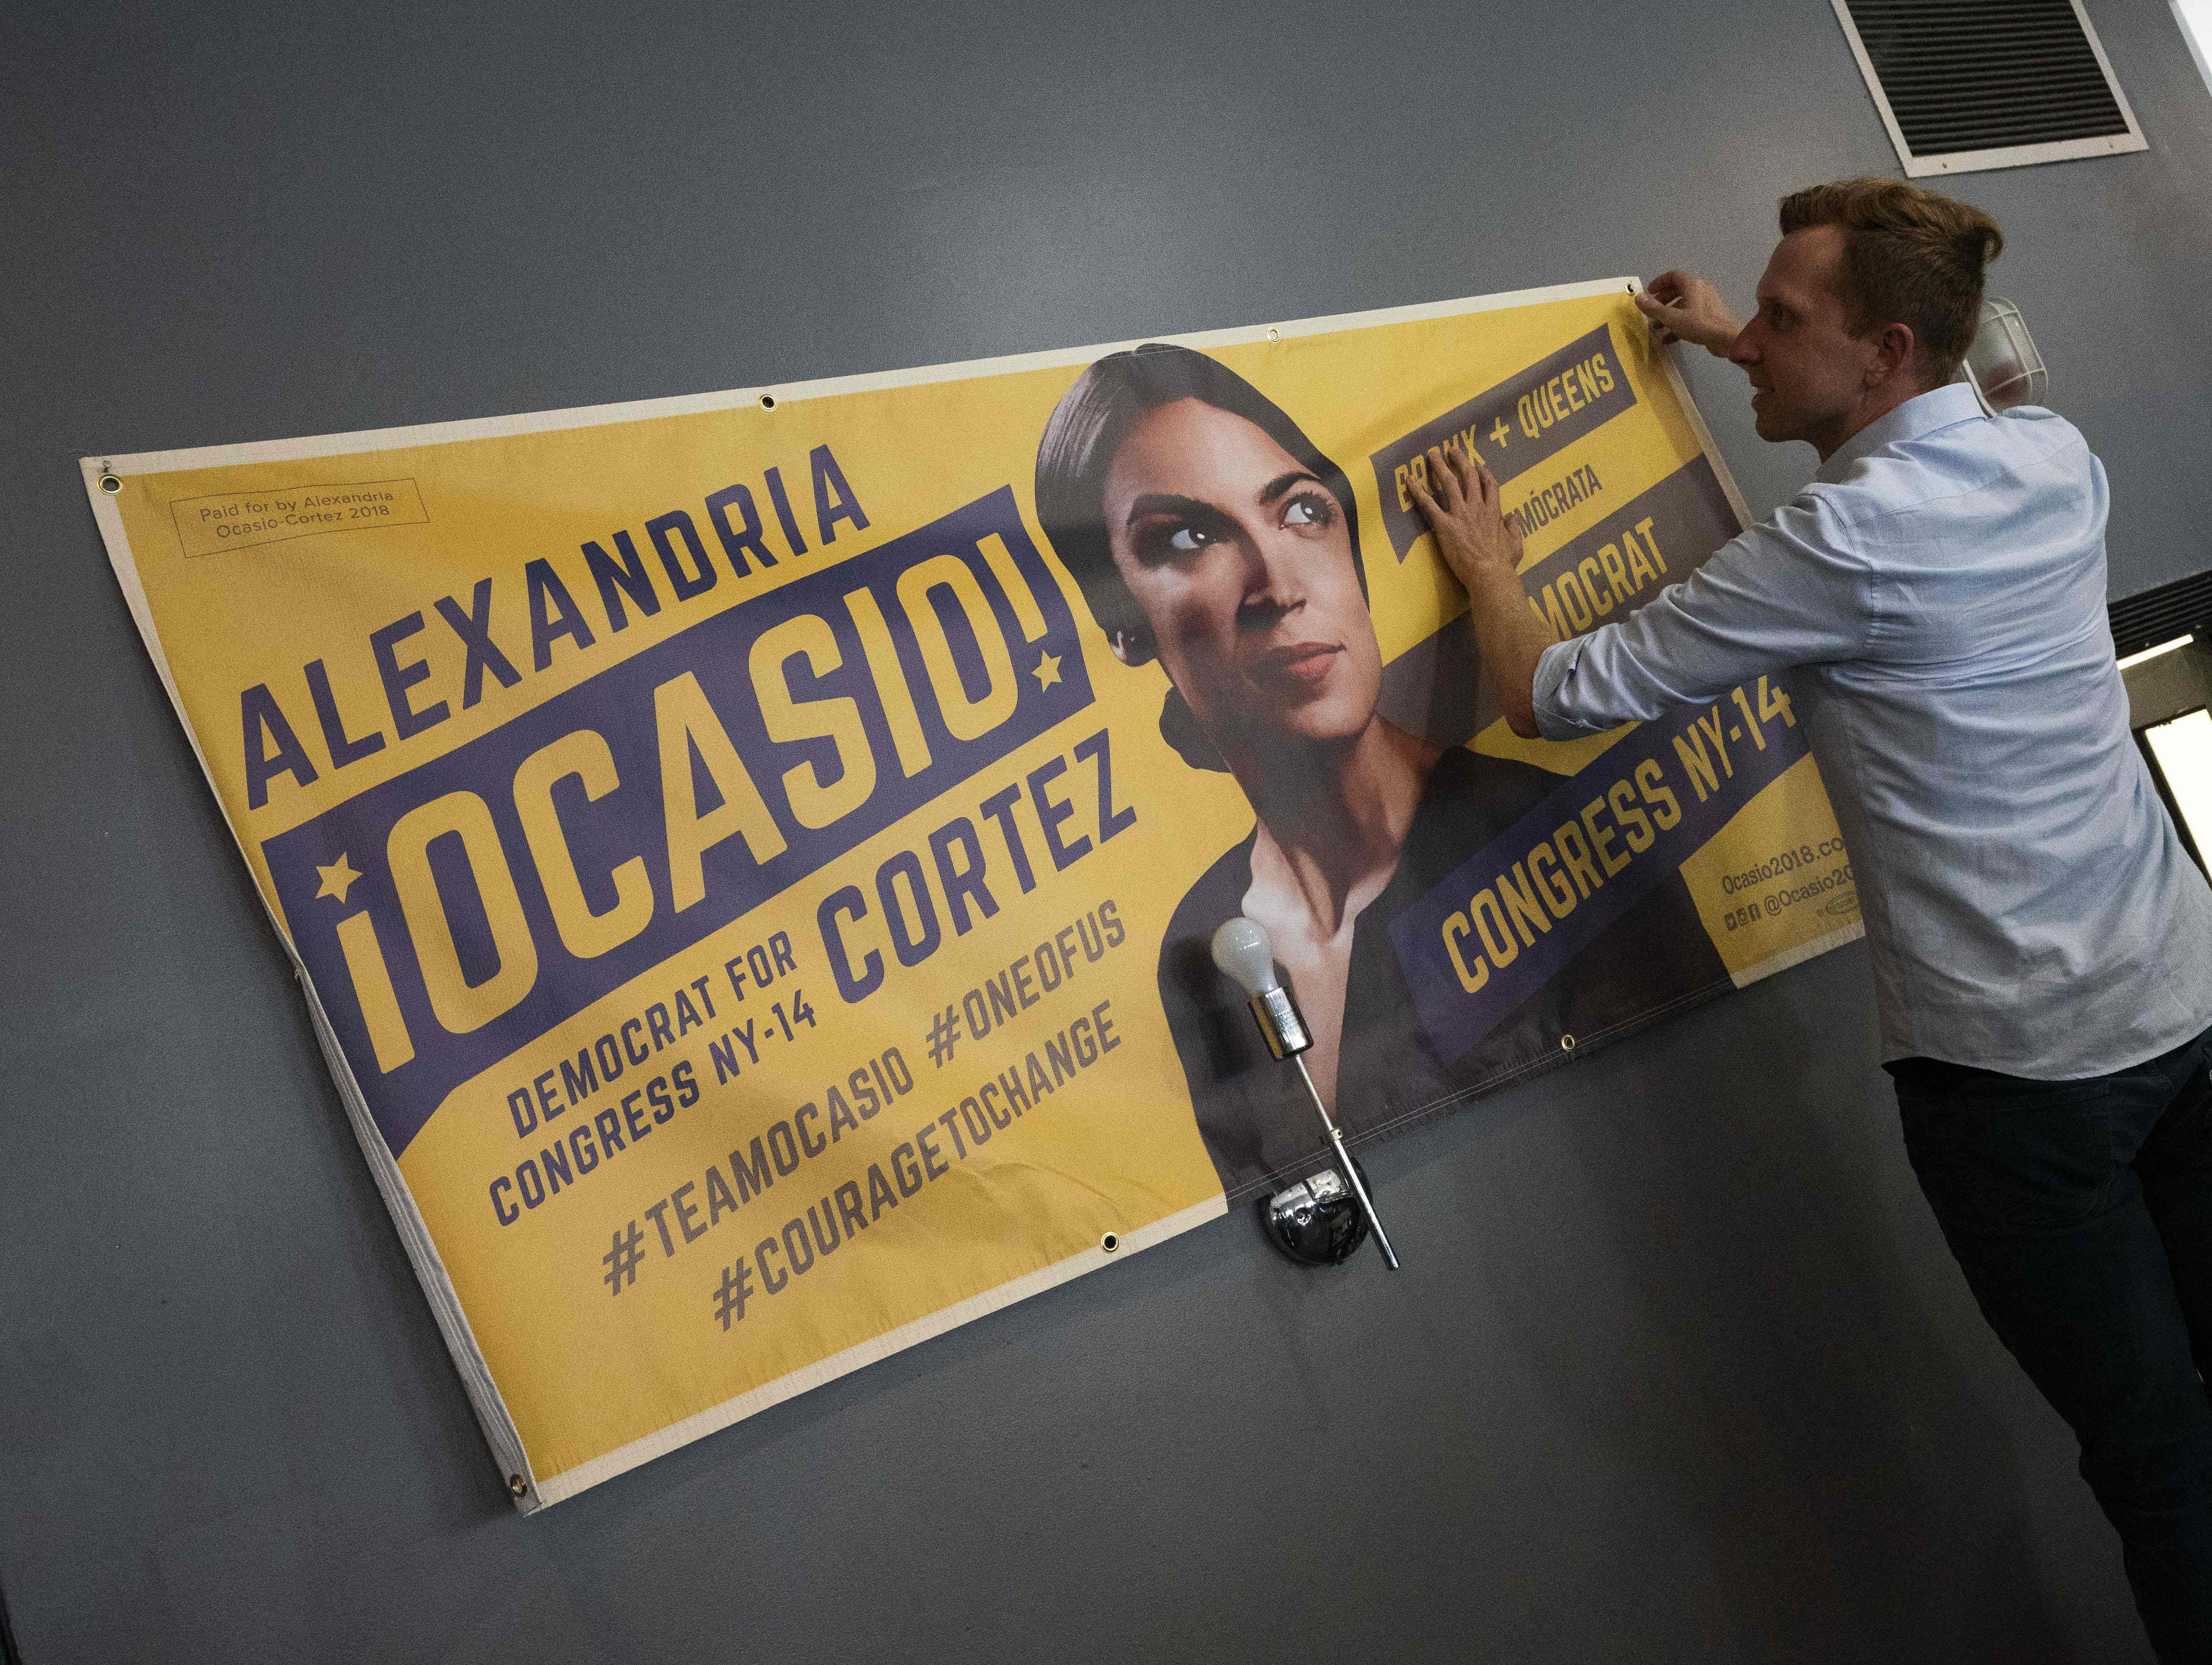 Campaign workers prepare for the arrival of democratic congressional candidate Alexandria Ocasio-Cortez for her general campaign kick-off rally on Sept. 22, 2018 in the Bronx borough of New York.